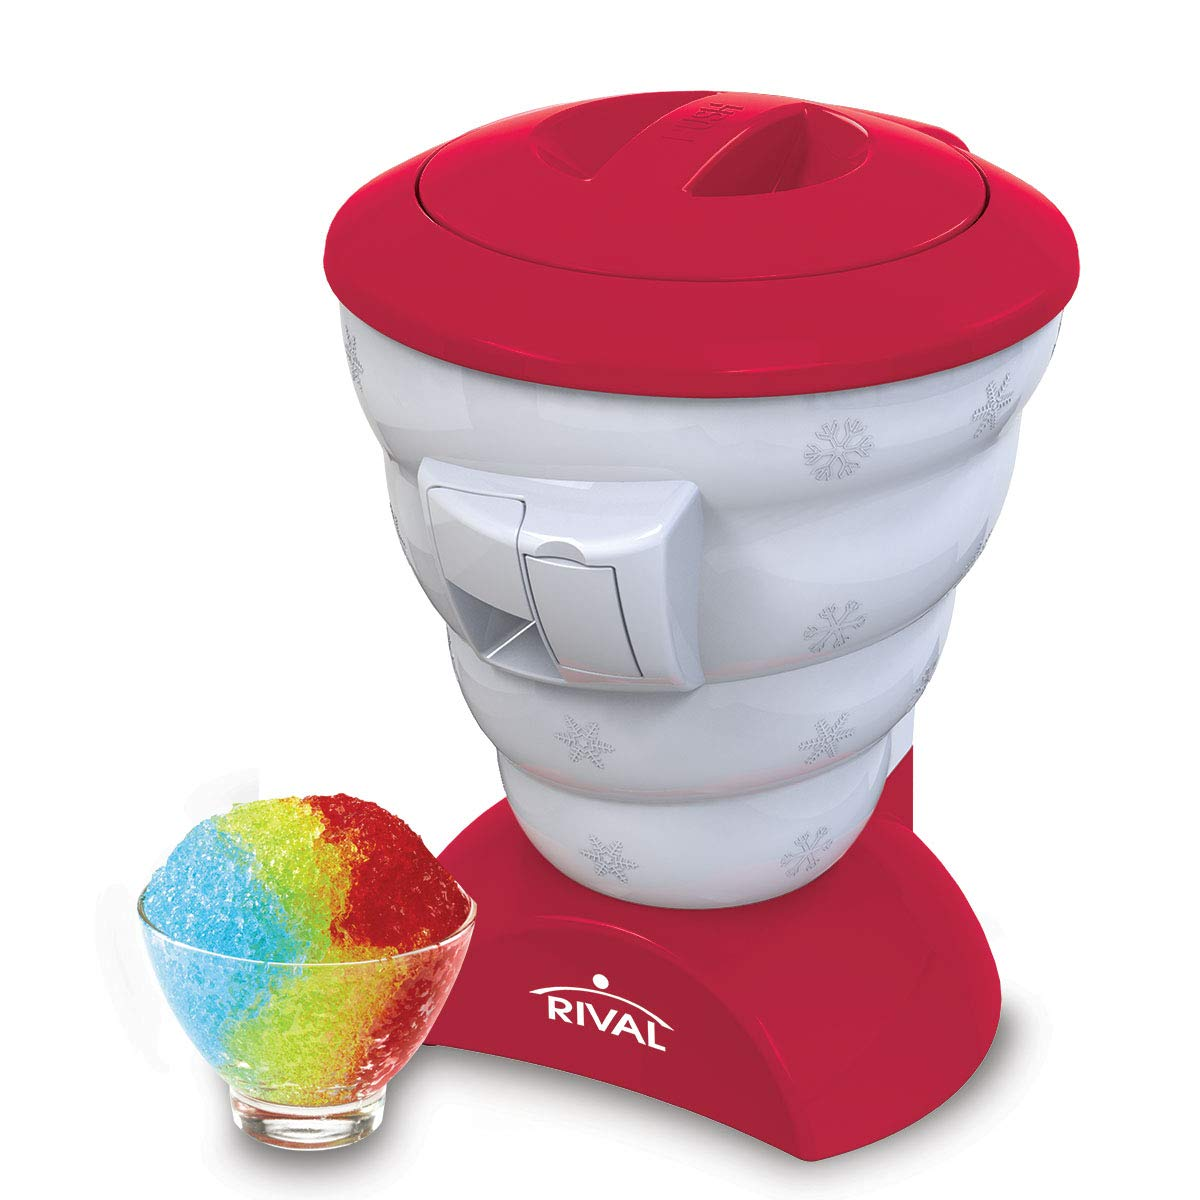 Rival Blizzard Flavored Ice Shaver Snow Cone Maker, Red (Certified Refurbished) by Rival